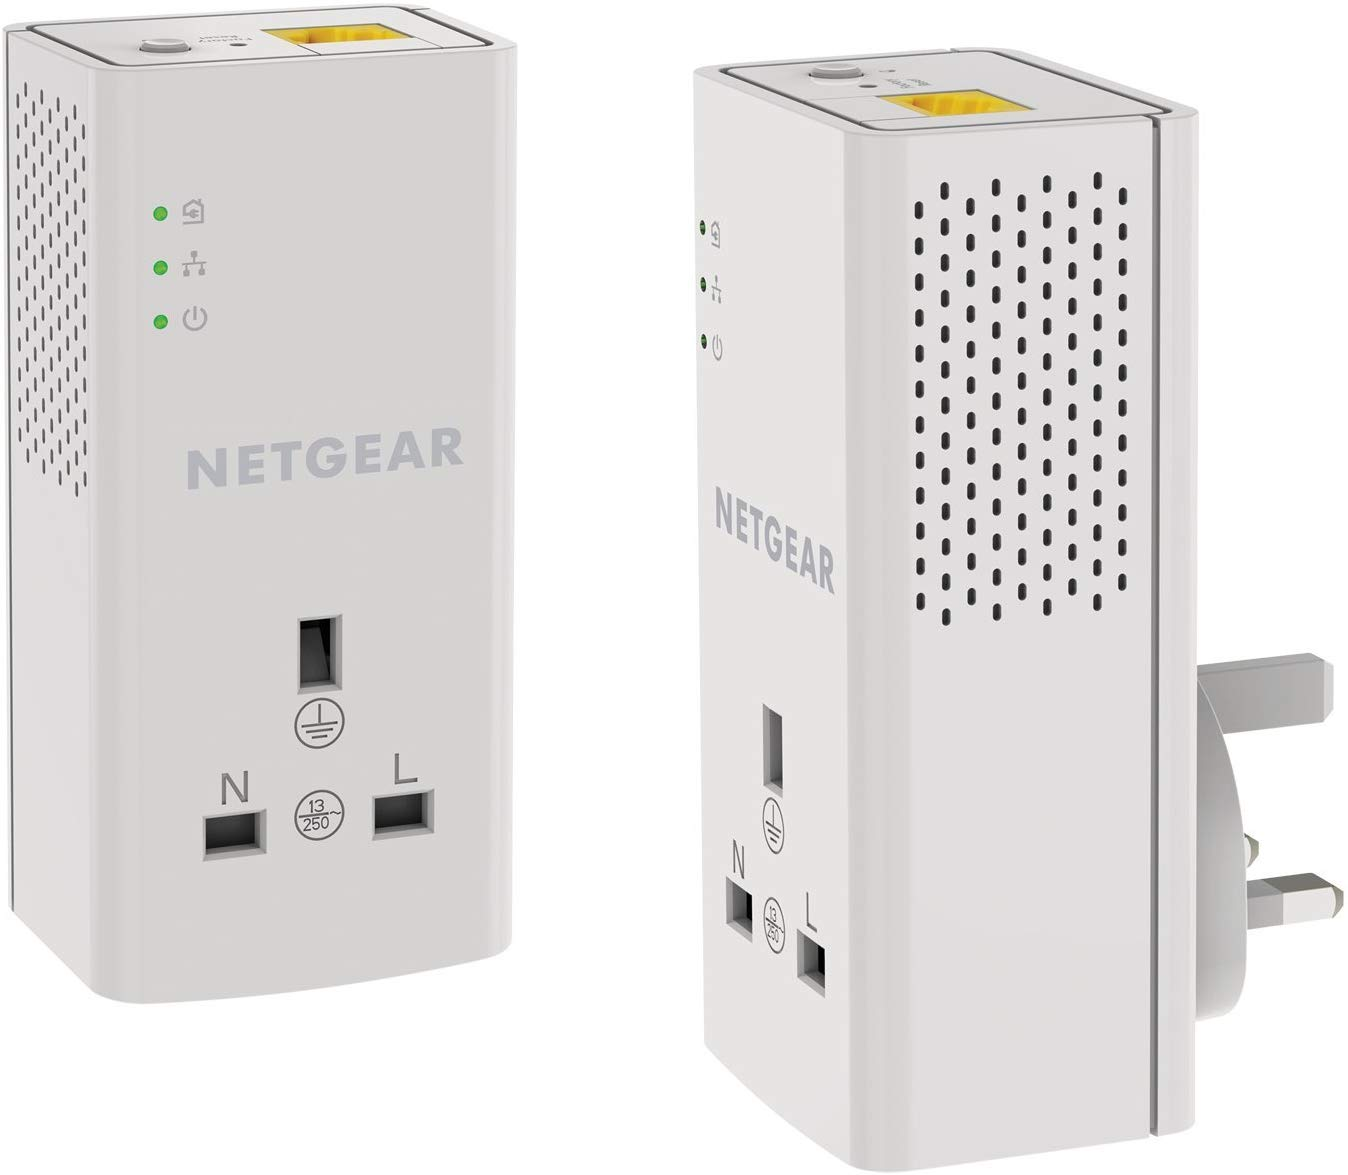 30% off NETGEAR PLP1000-100UKS 1 Port,1000 Mbps with Extra outlet – Pack of 2